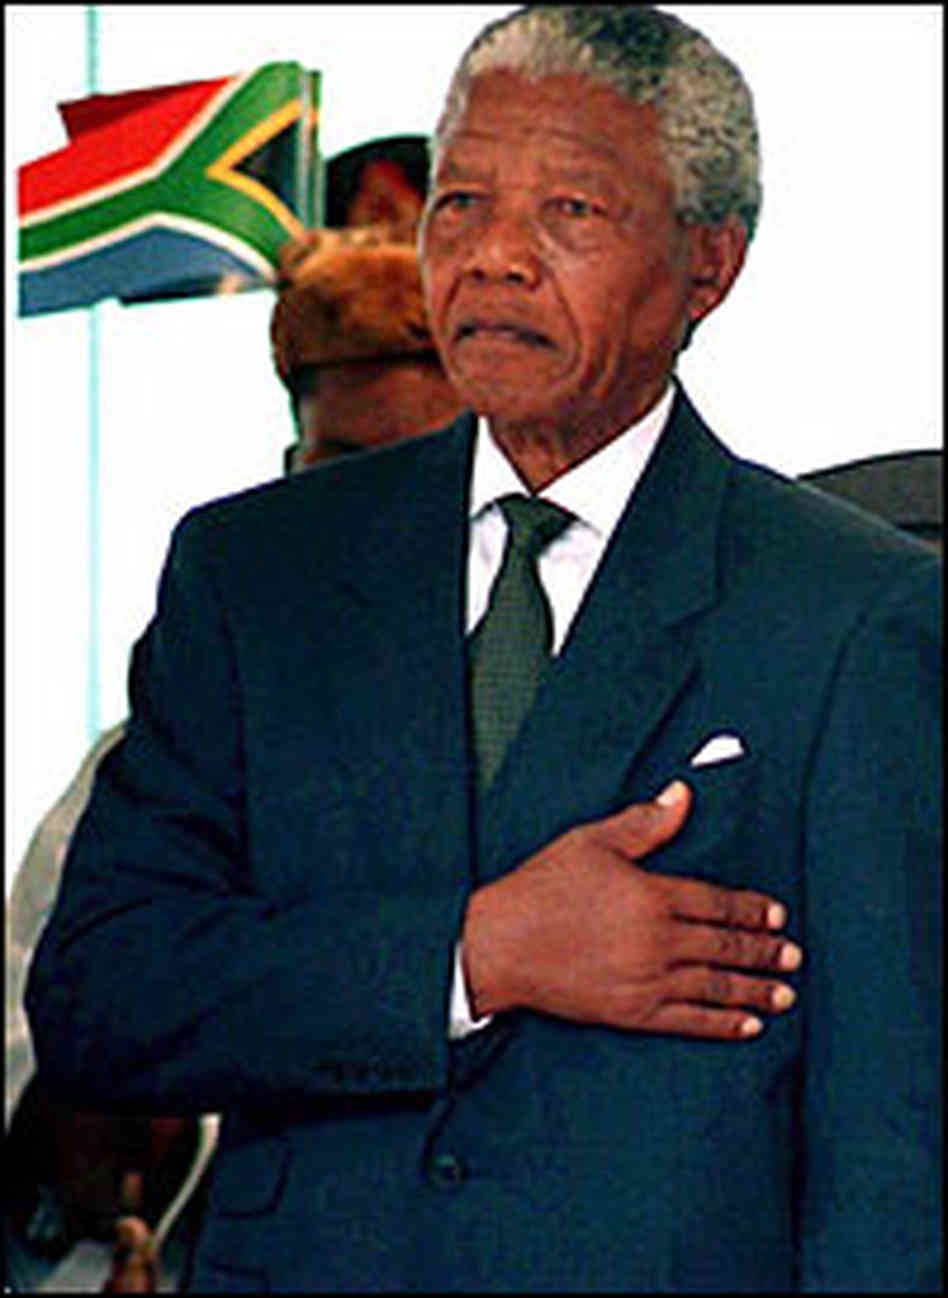 nelson madela the leader Every time i think of nelson mandela, the great south african leader, the first thought in my mind is we need more like him we are ready and in.